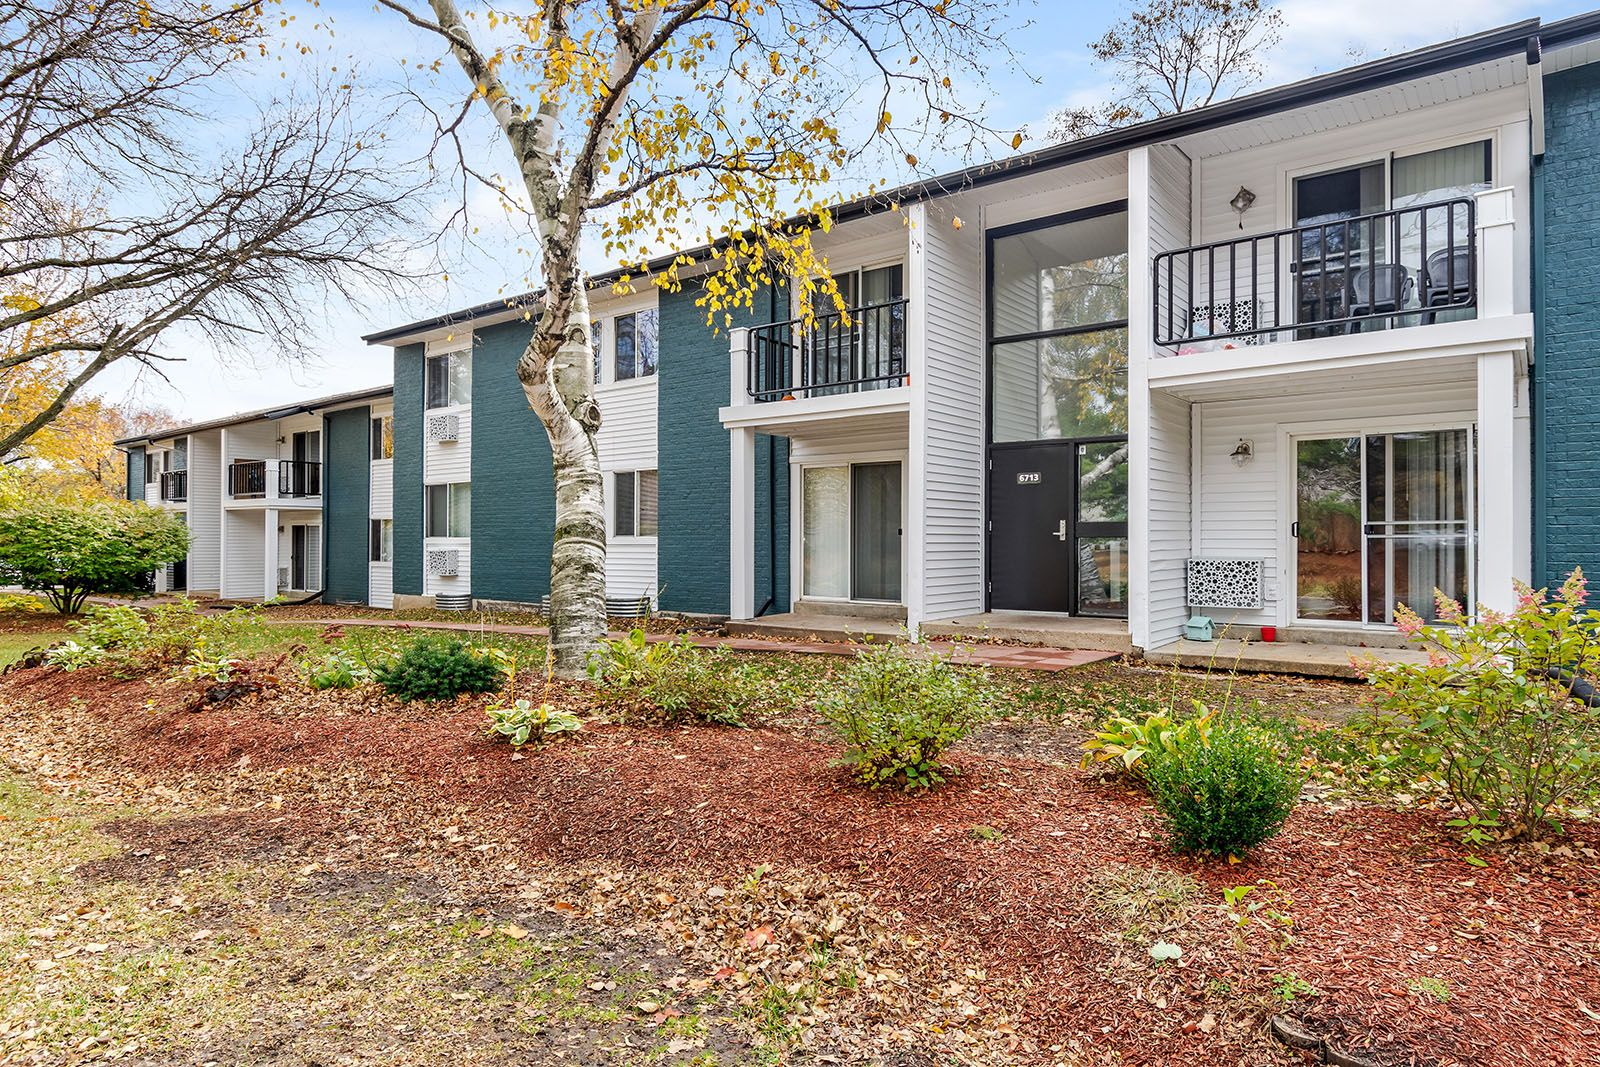 Welcome Home Renew Madison Features Updated Apartment Homes On 22 Acres Of Picturesque Grounds And Cool Apartments Pet Friendly Apartments Apartments For Rent